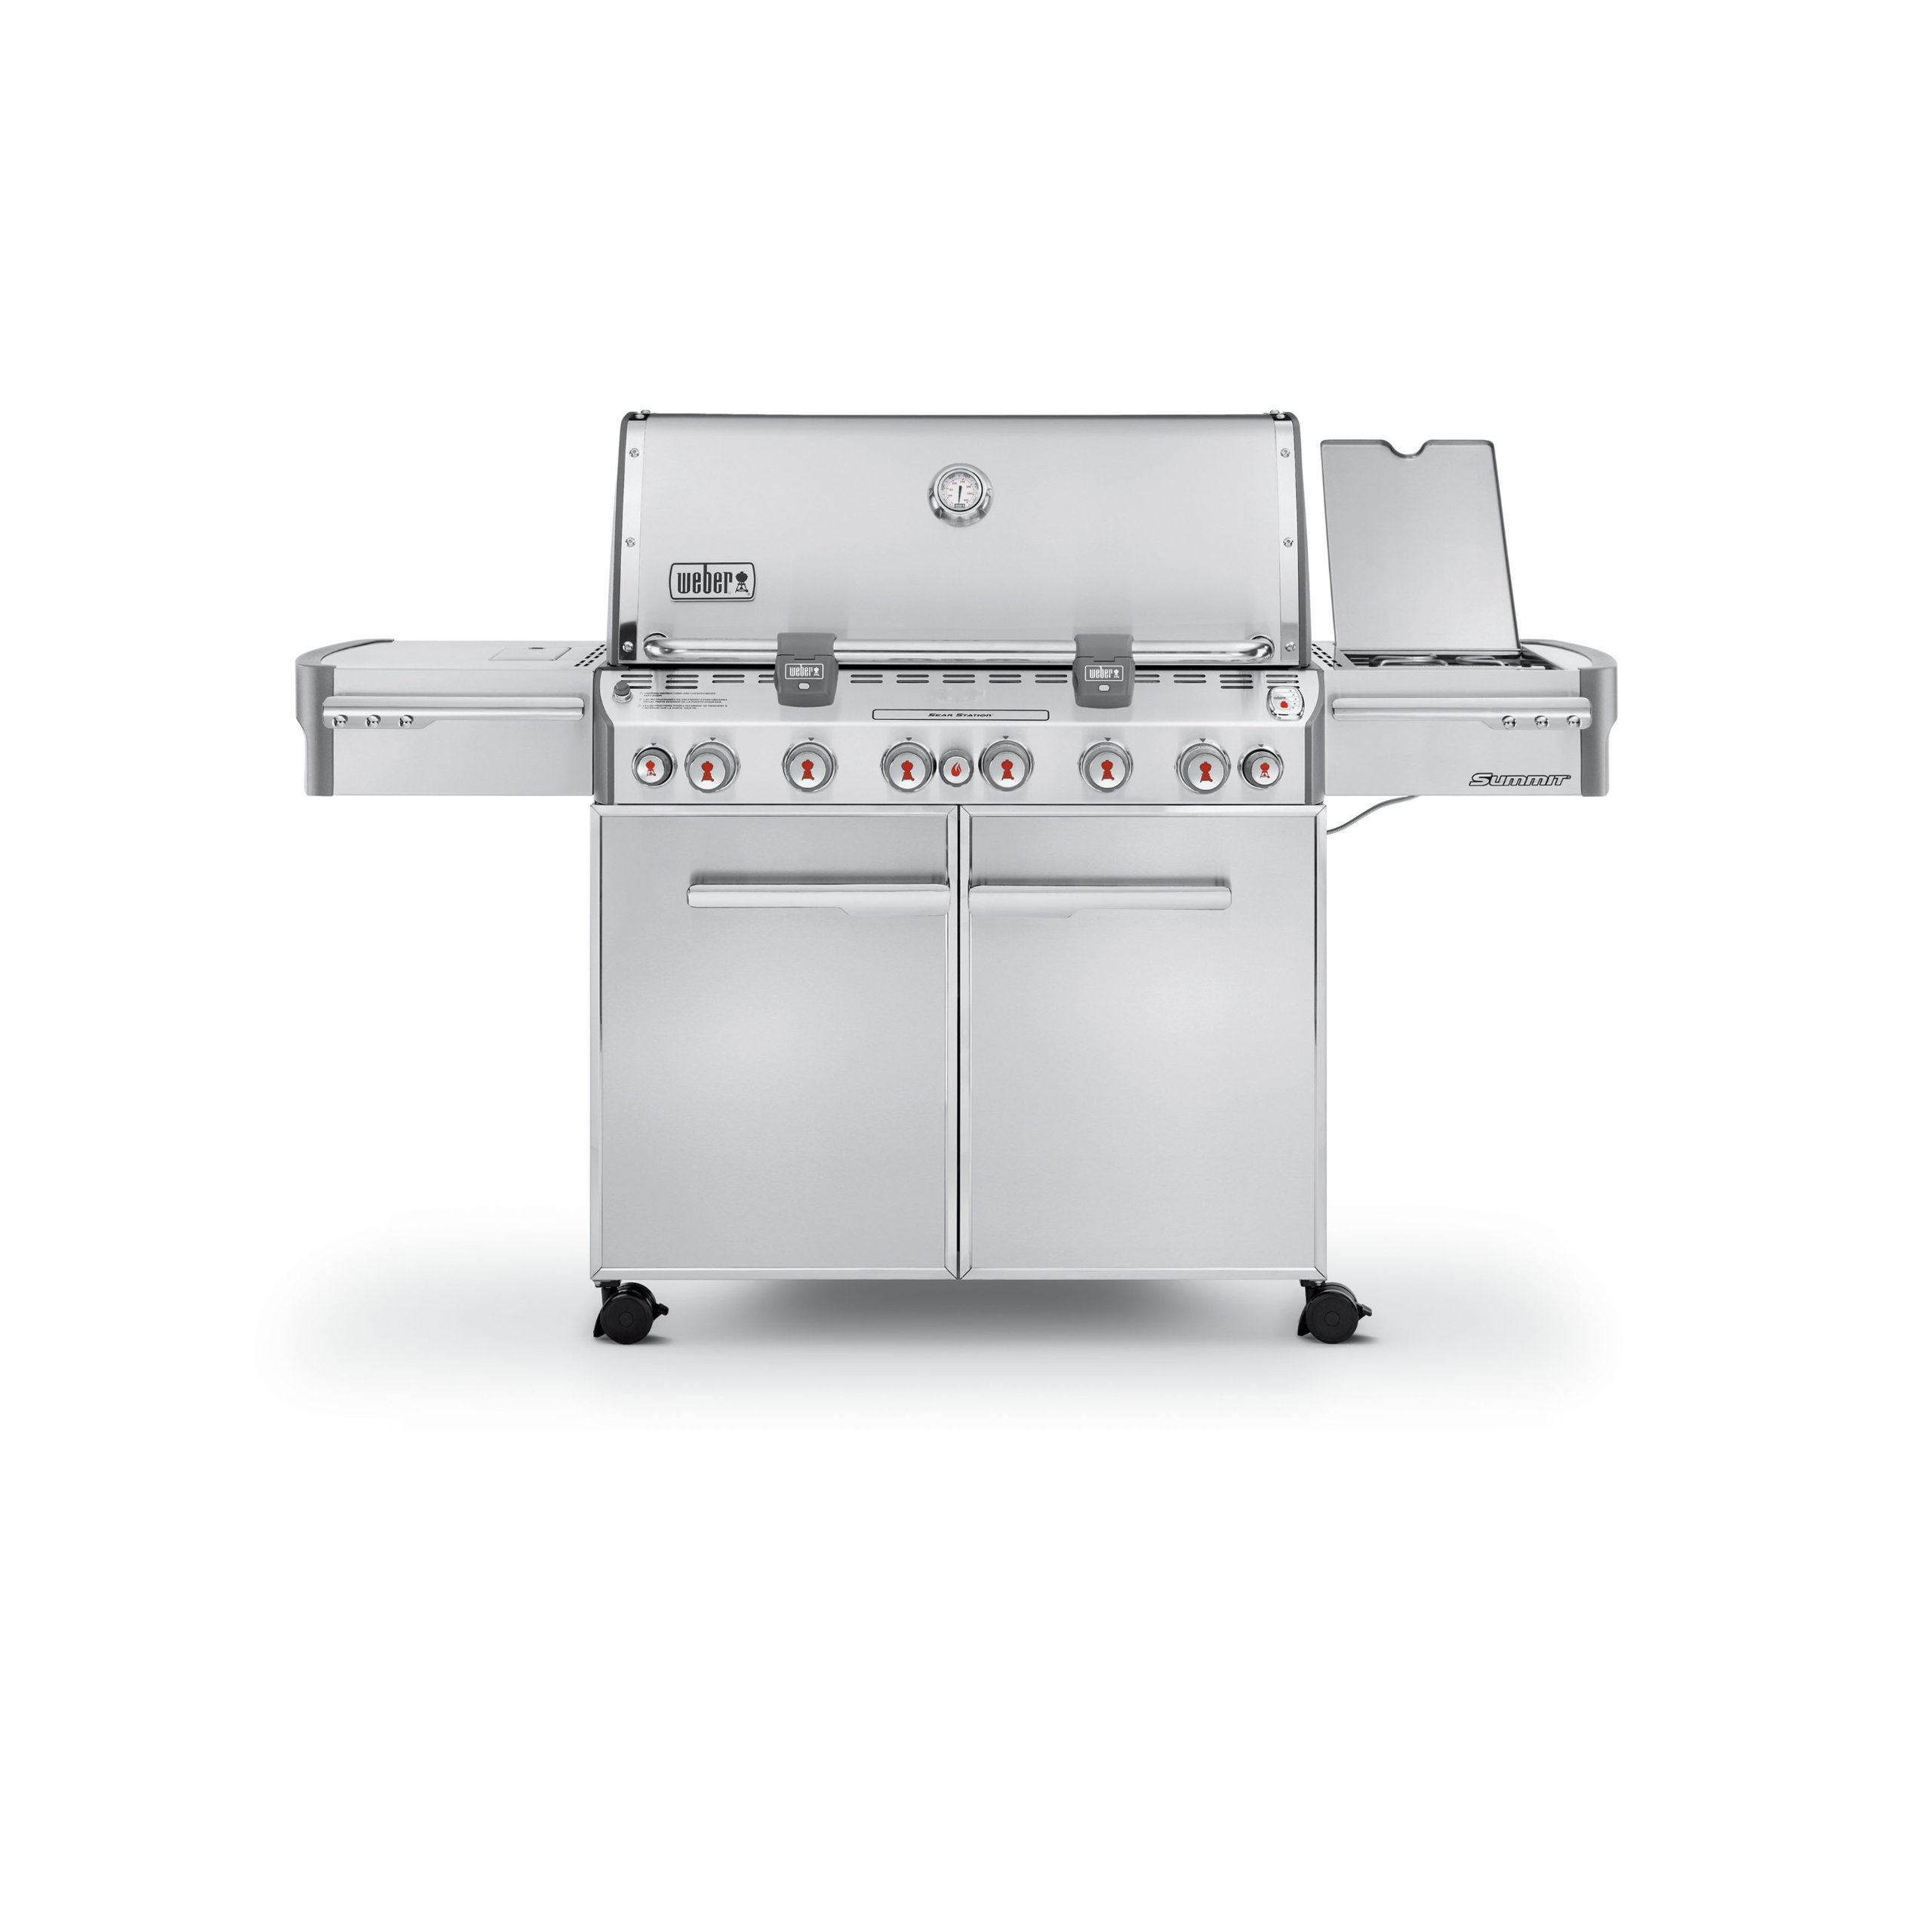 Weber Summit 7370001 S-670 Stainless-Steel 769-Square-Inch 60,800-BTU Liquid-Propane Gas Grill by Weber